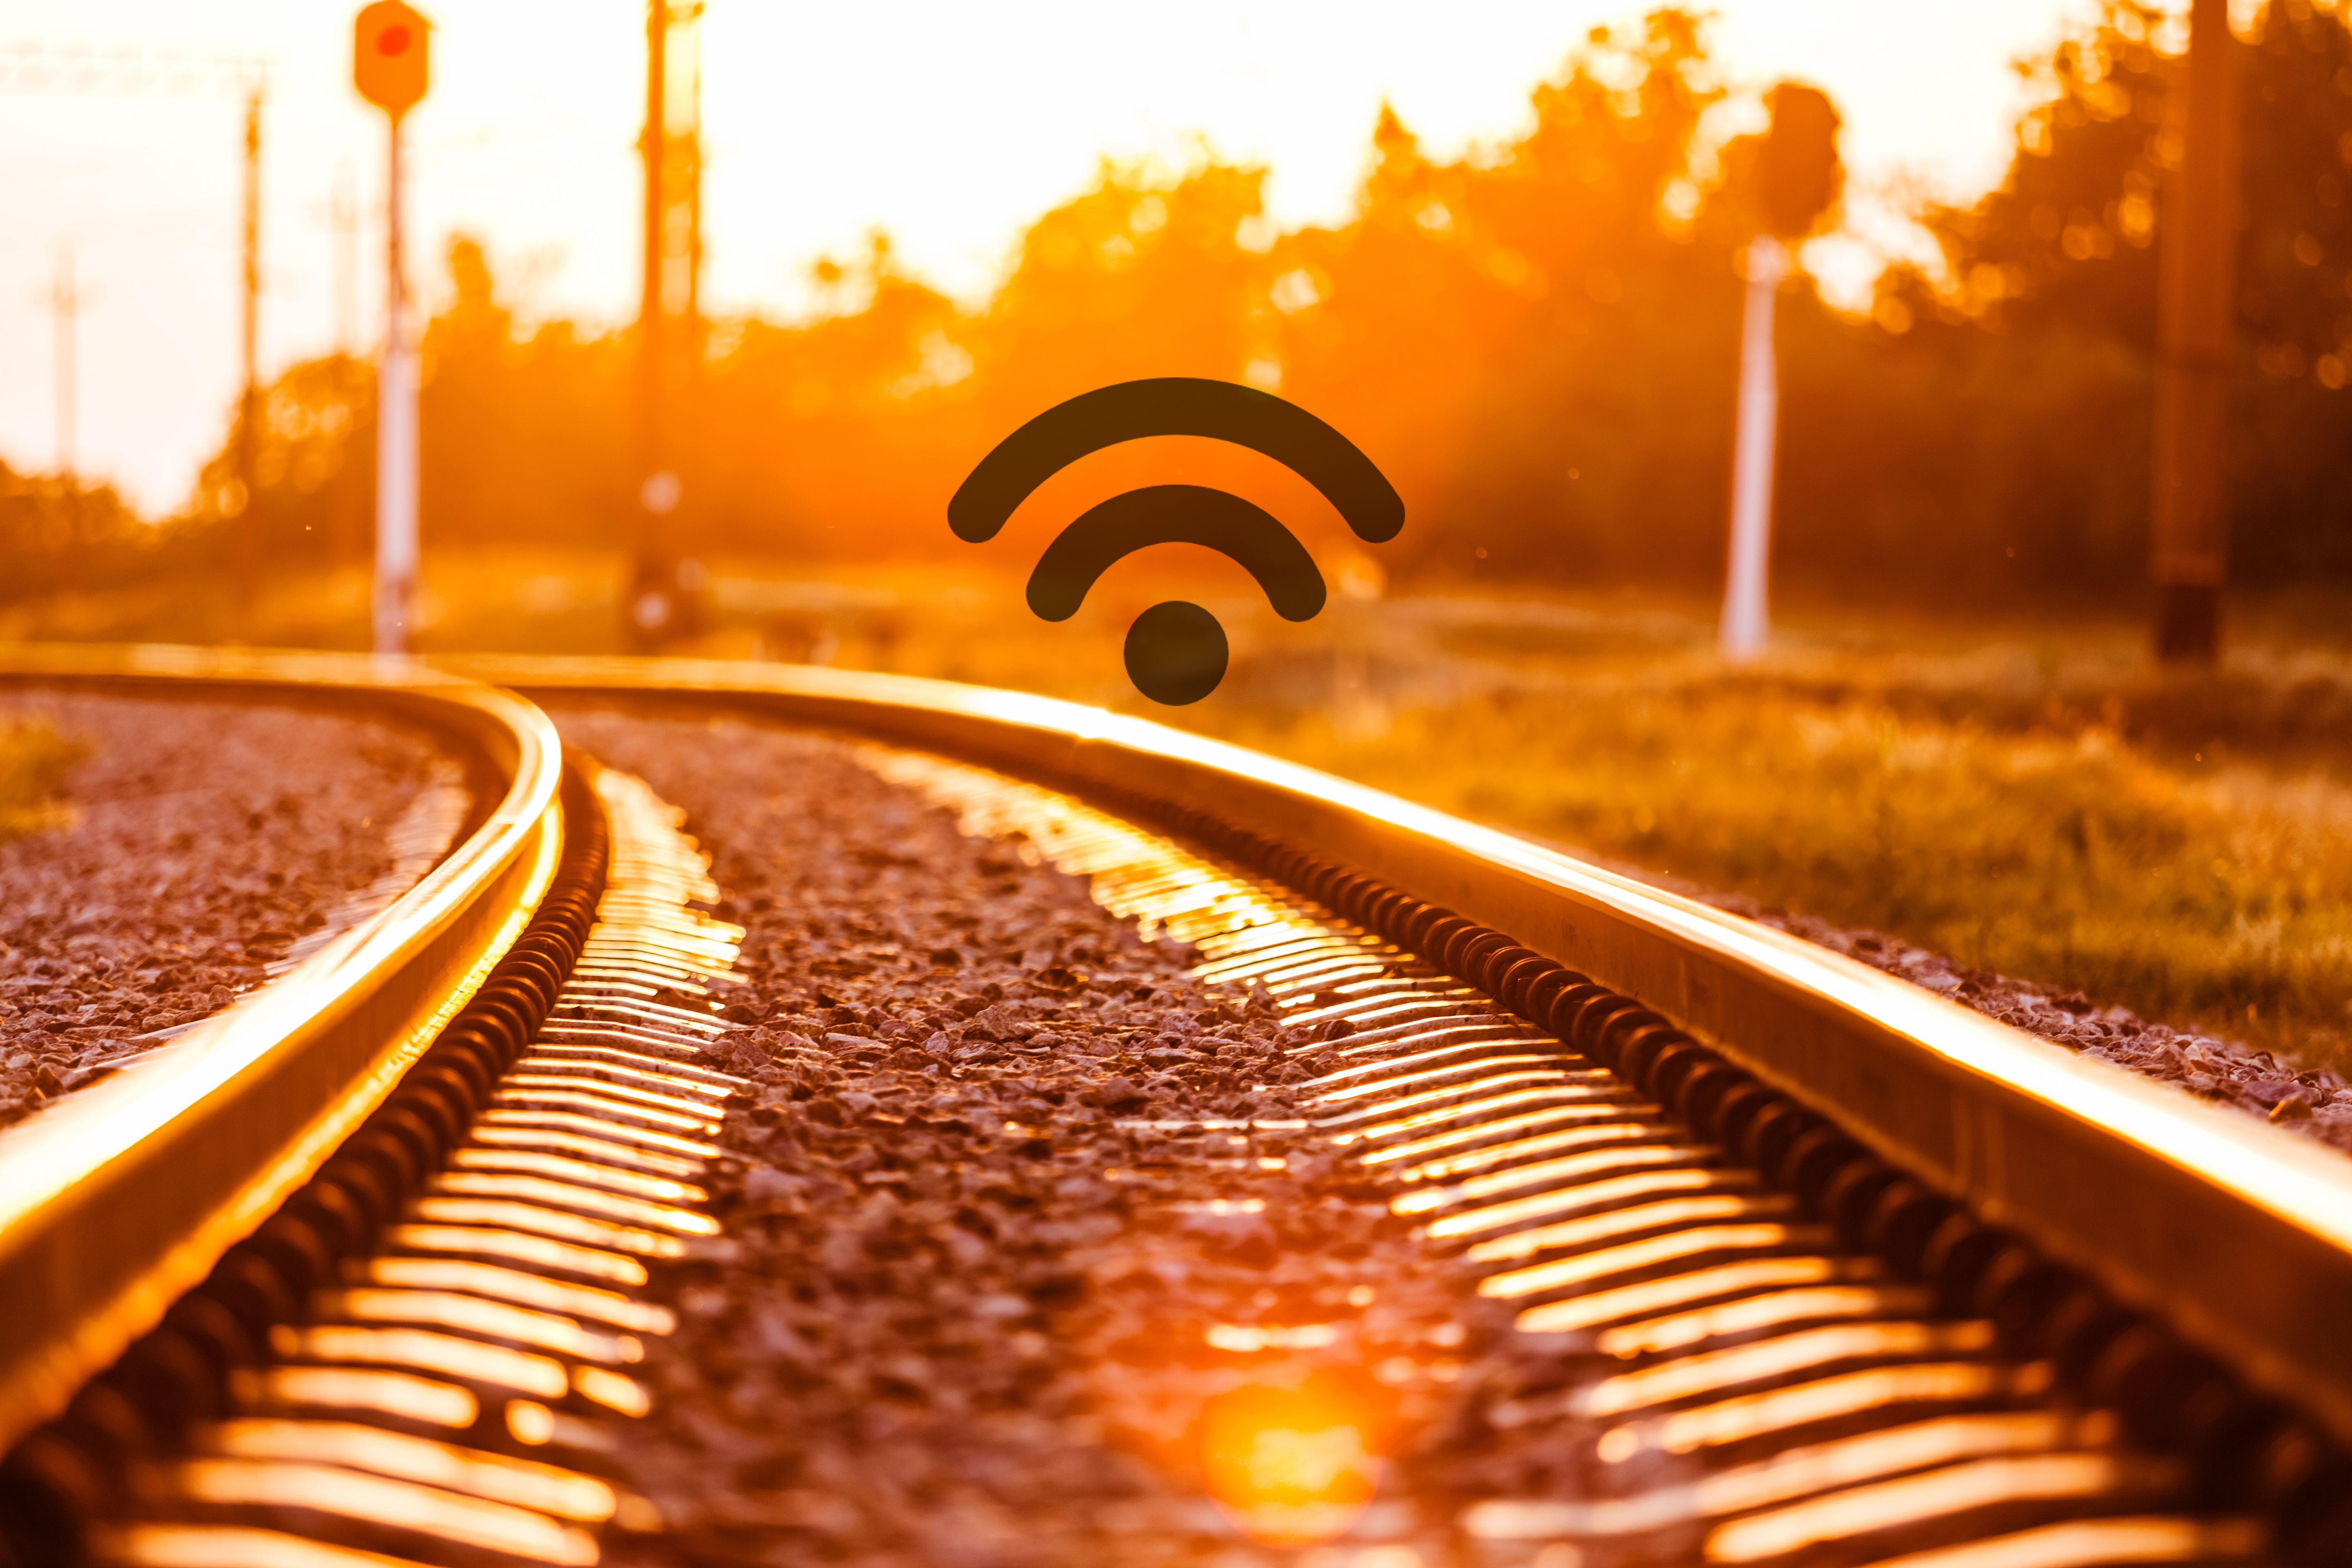 Google together with RailTel expands free Wi-Fi throughout 9 more stations across India - wireless connectivity on railways